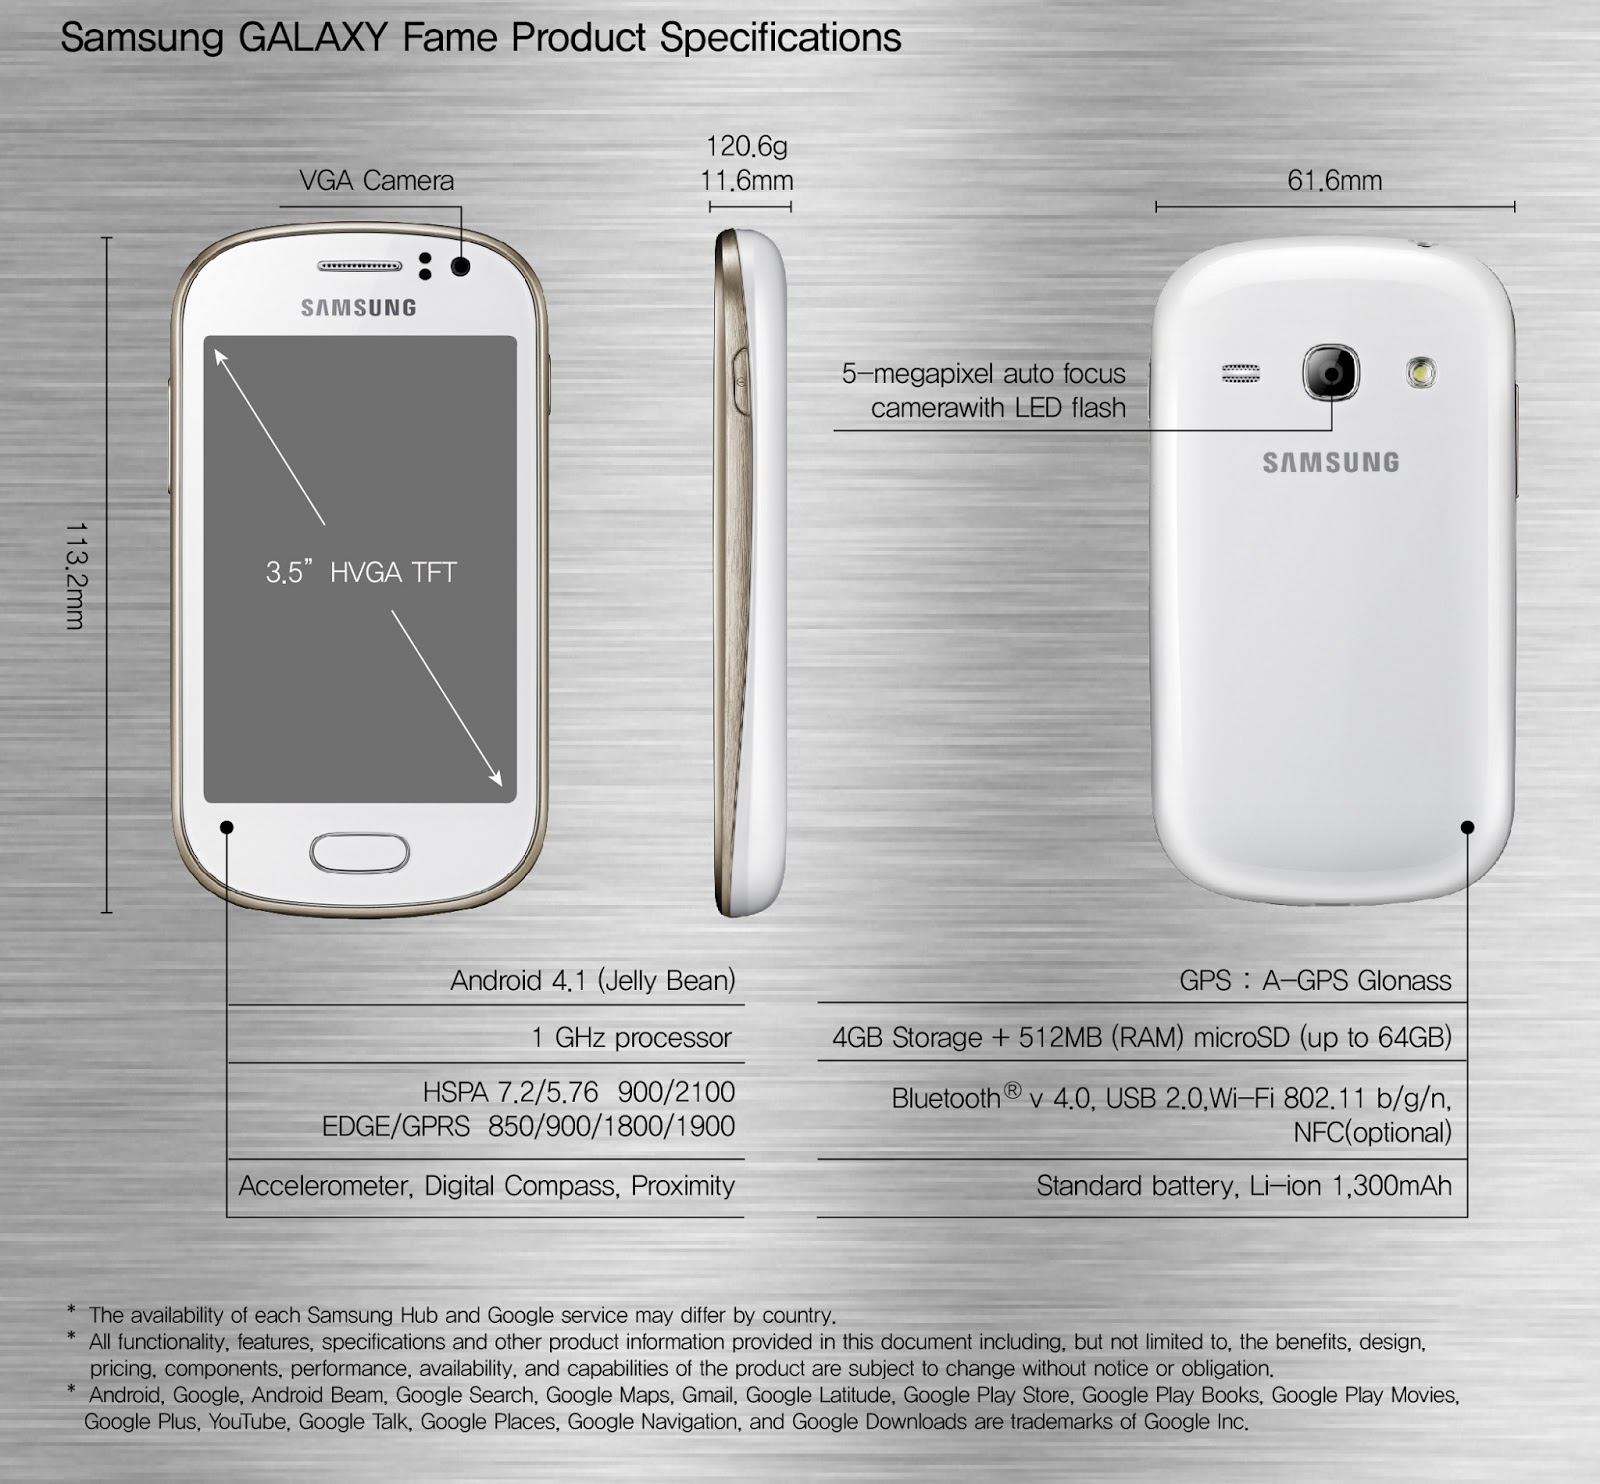 Samsung Galaxy Young 6312 Mobile Updates Infinite 4 Inch Display Android 41 Jellybean Dual Core 12 Ghz Processor Win Or Grand Quattro Gt I8552 Rs 16900